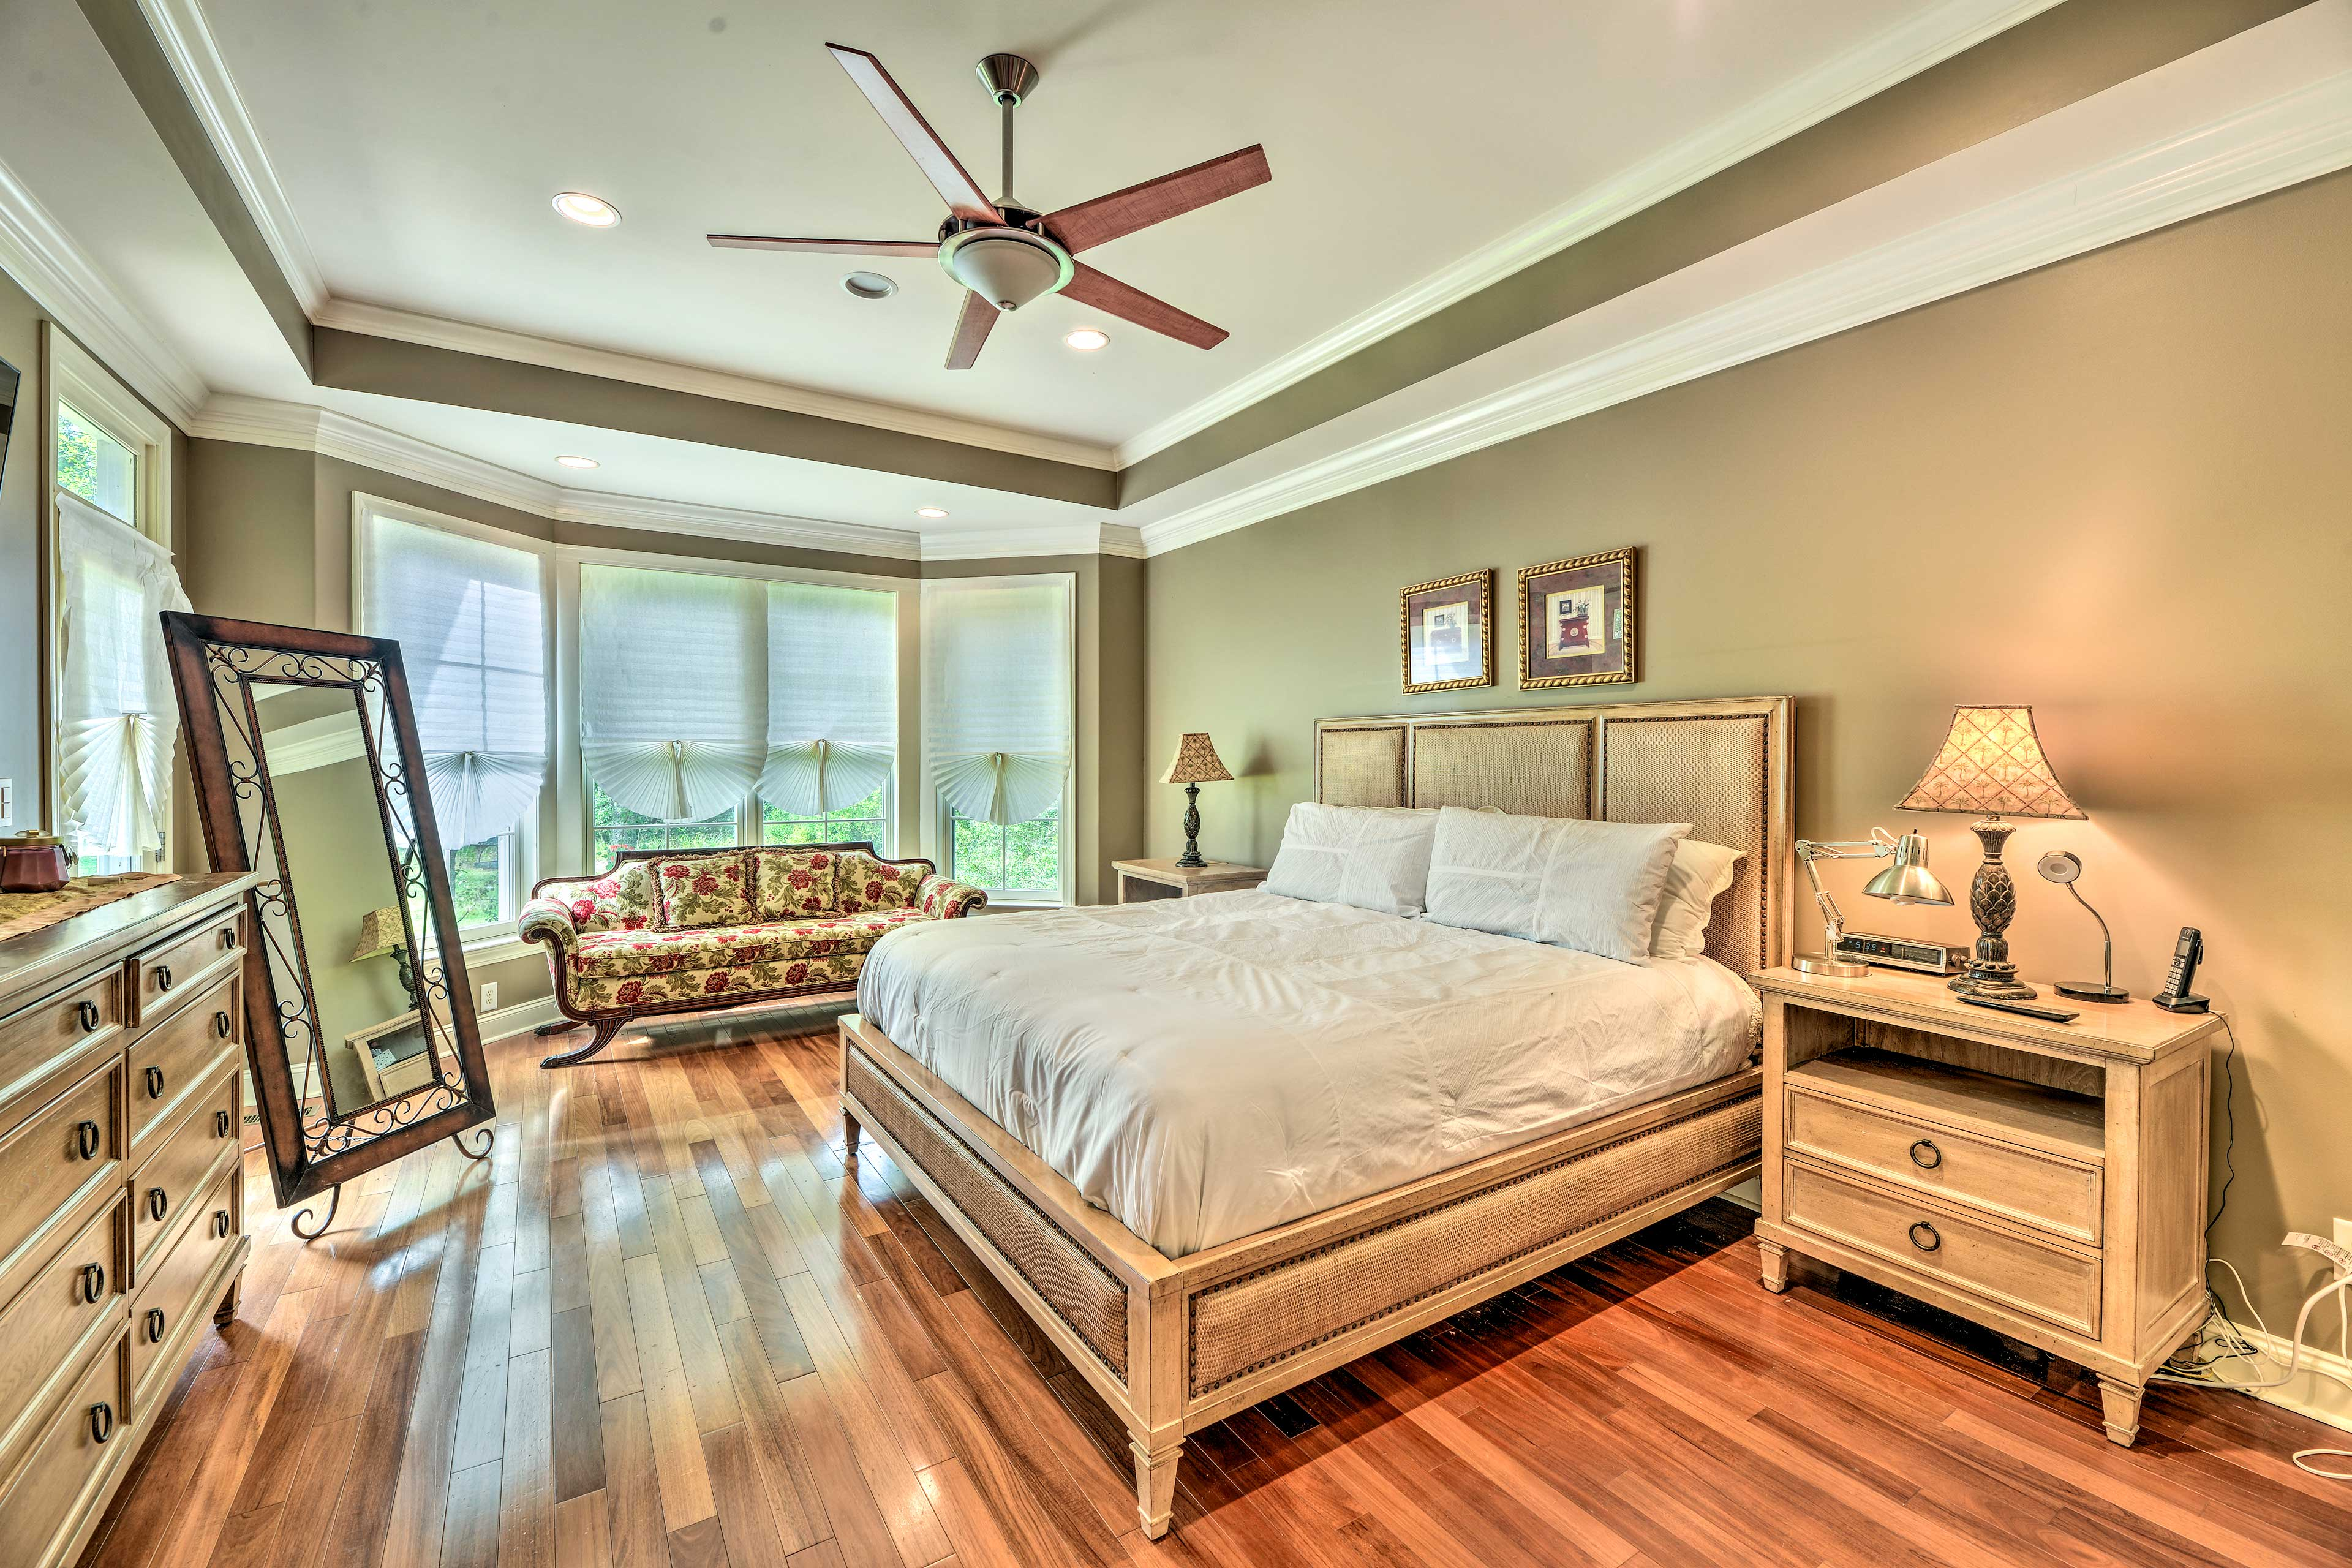 The master bedroom is a luxurious escape!